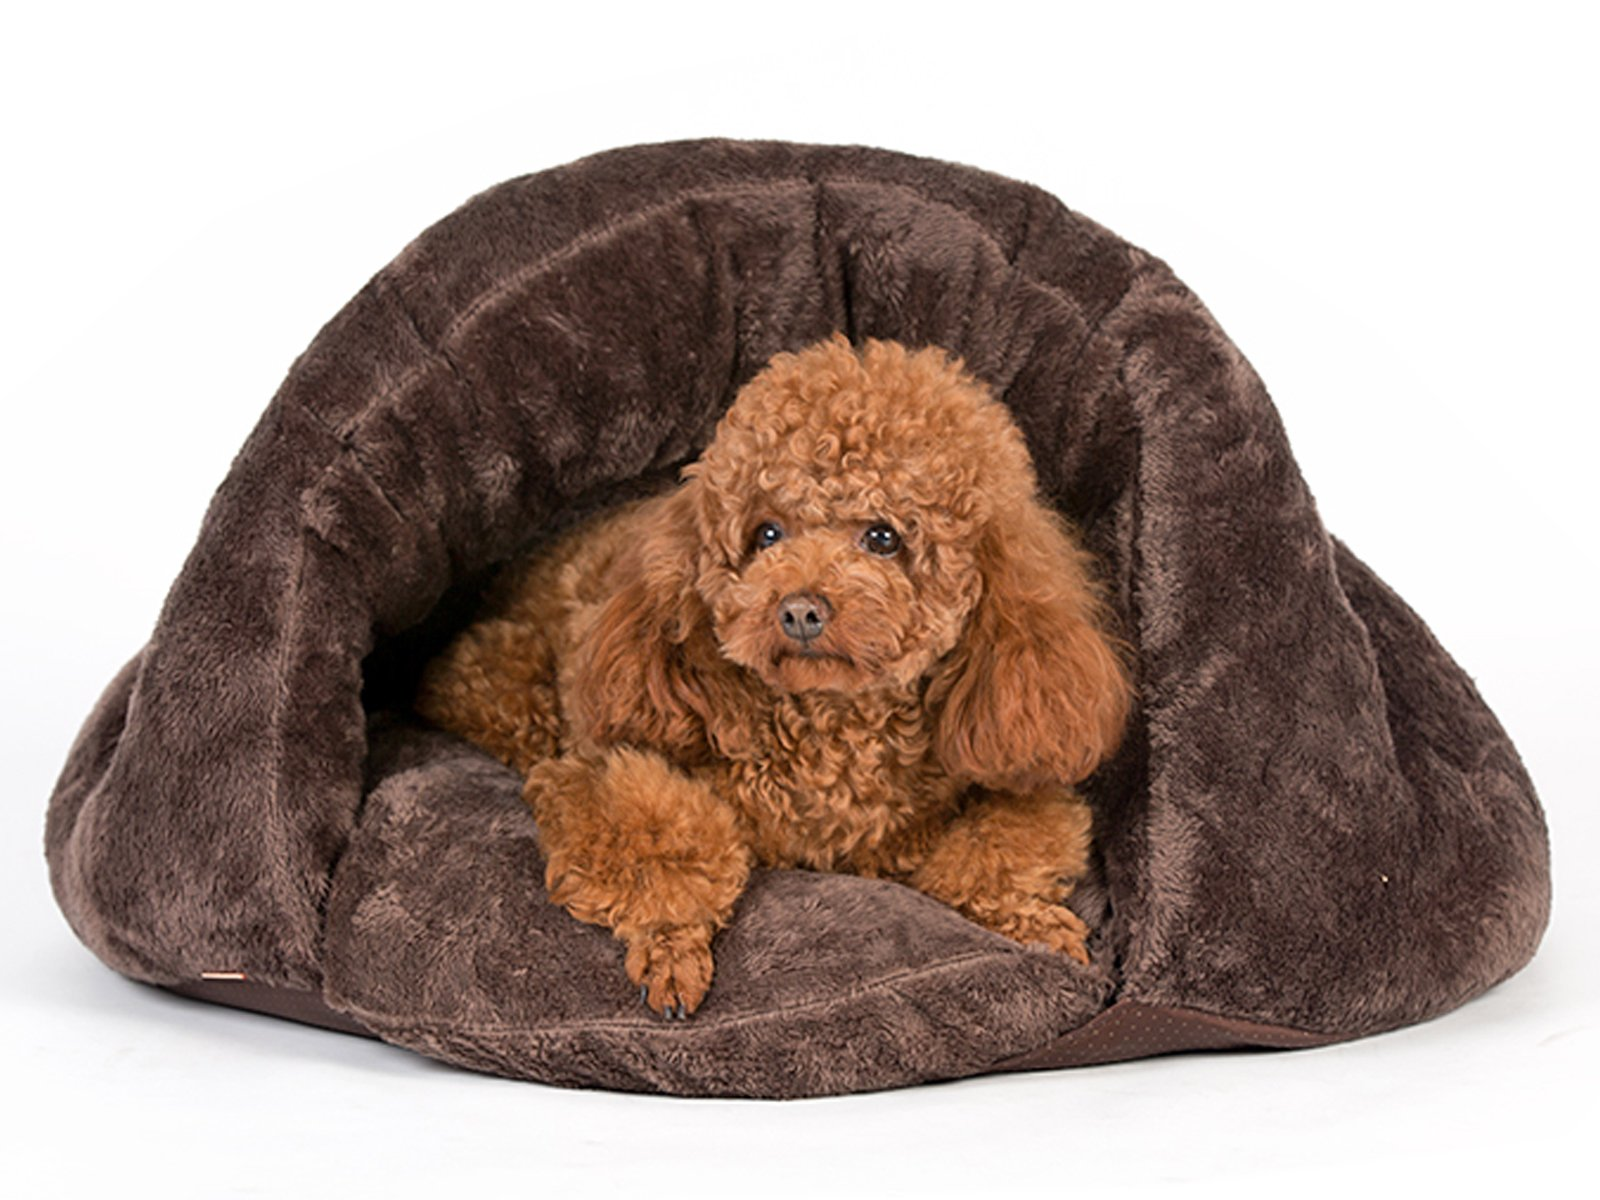 PLS Pet Cuddle Pouch Pet Bed (Medium), Bag, Covered Hooded Pet Bed Igloo-Shaped Lounger, Cosy, For Burrower Cats and Puppies, Brown